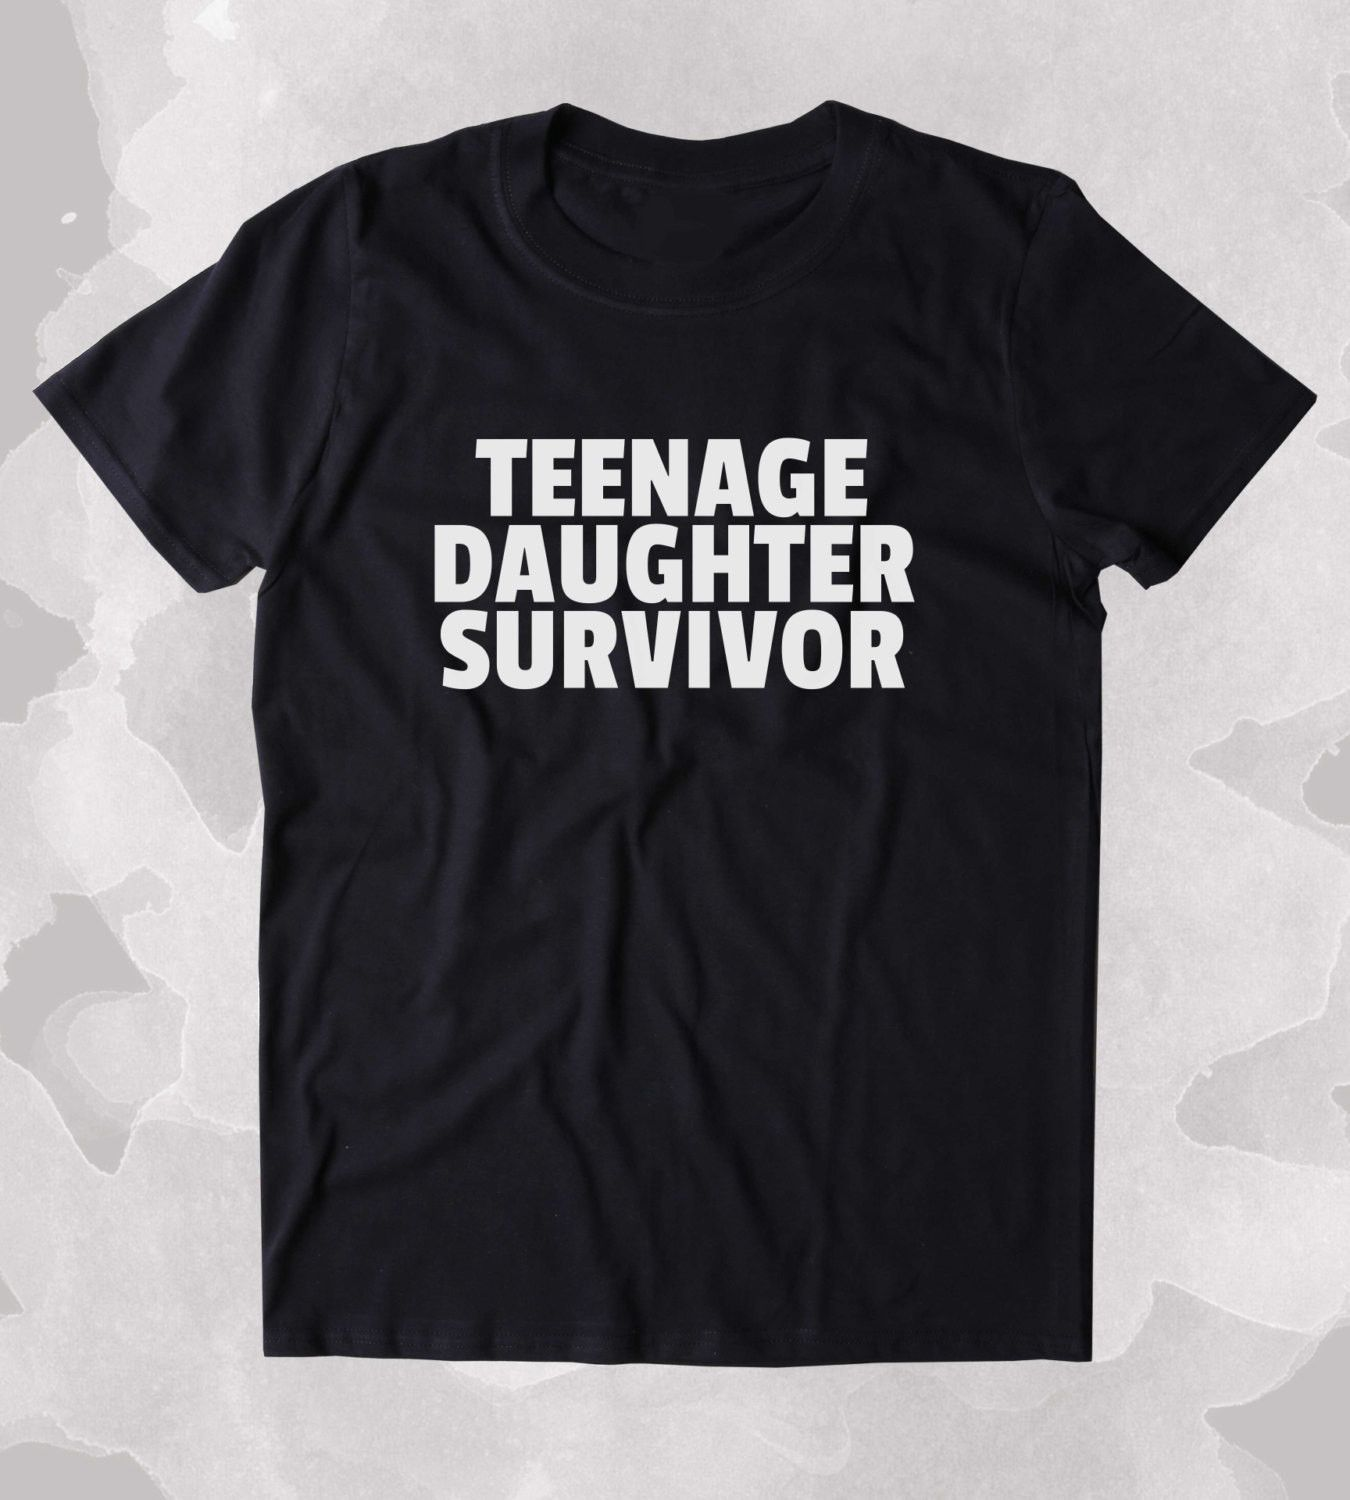 b8587bbd Teenage Daughter Survivor Shirt Funny Mom Dad Parents Gift Clothing Tumblr T -shirt SIZE GUIDE